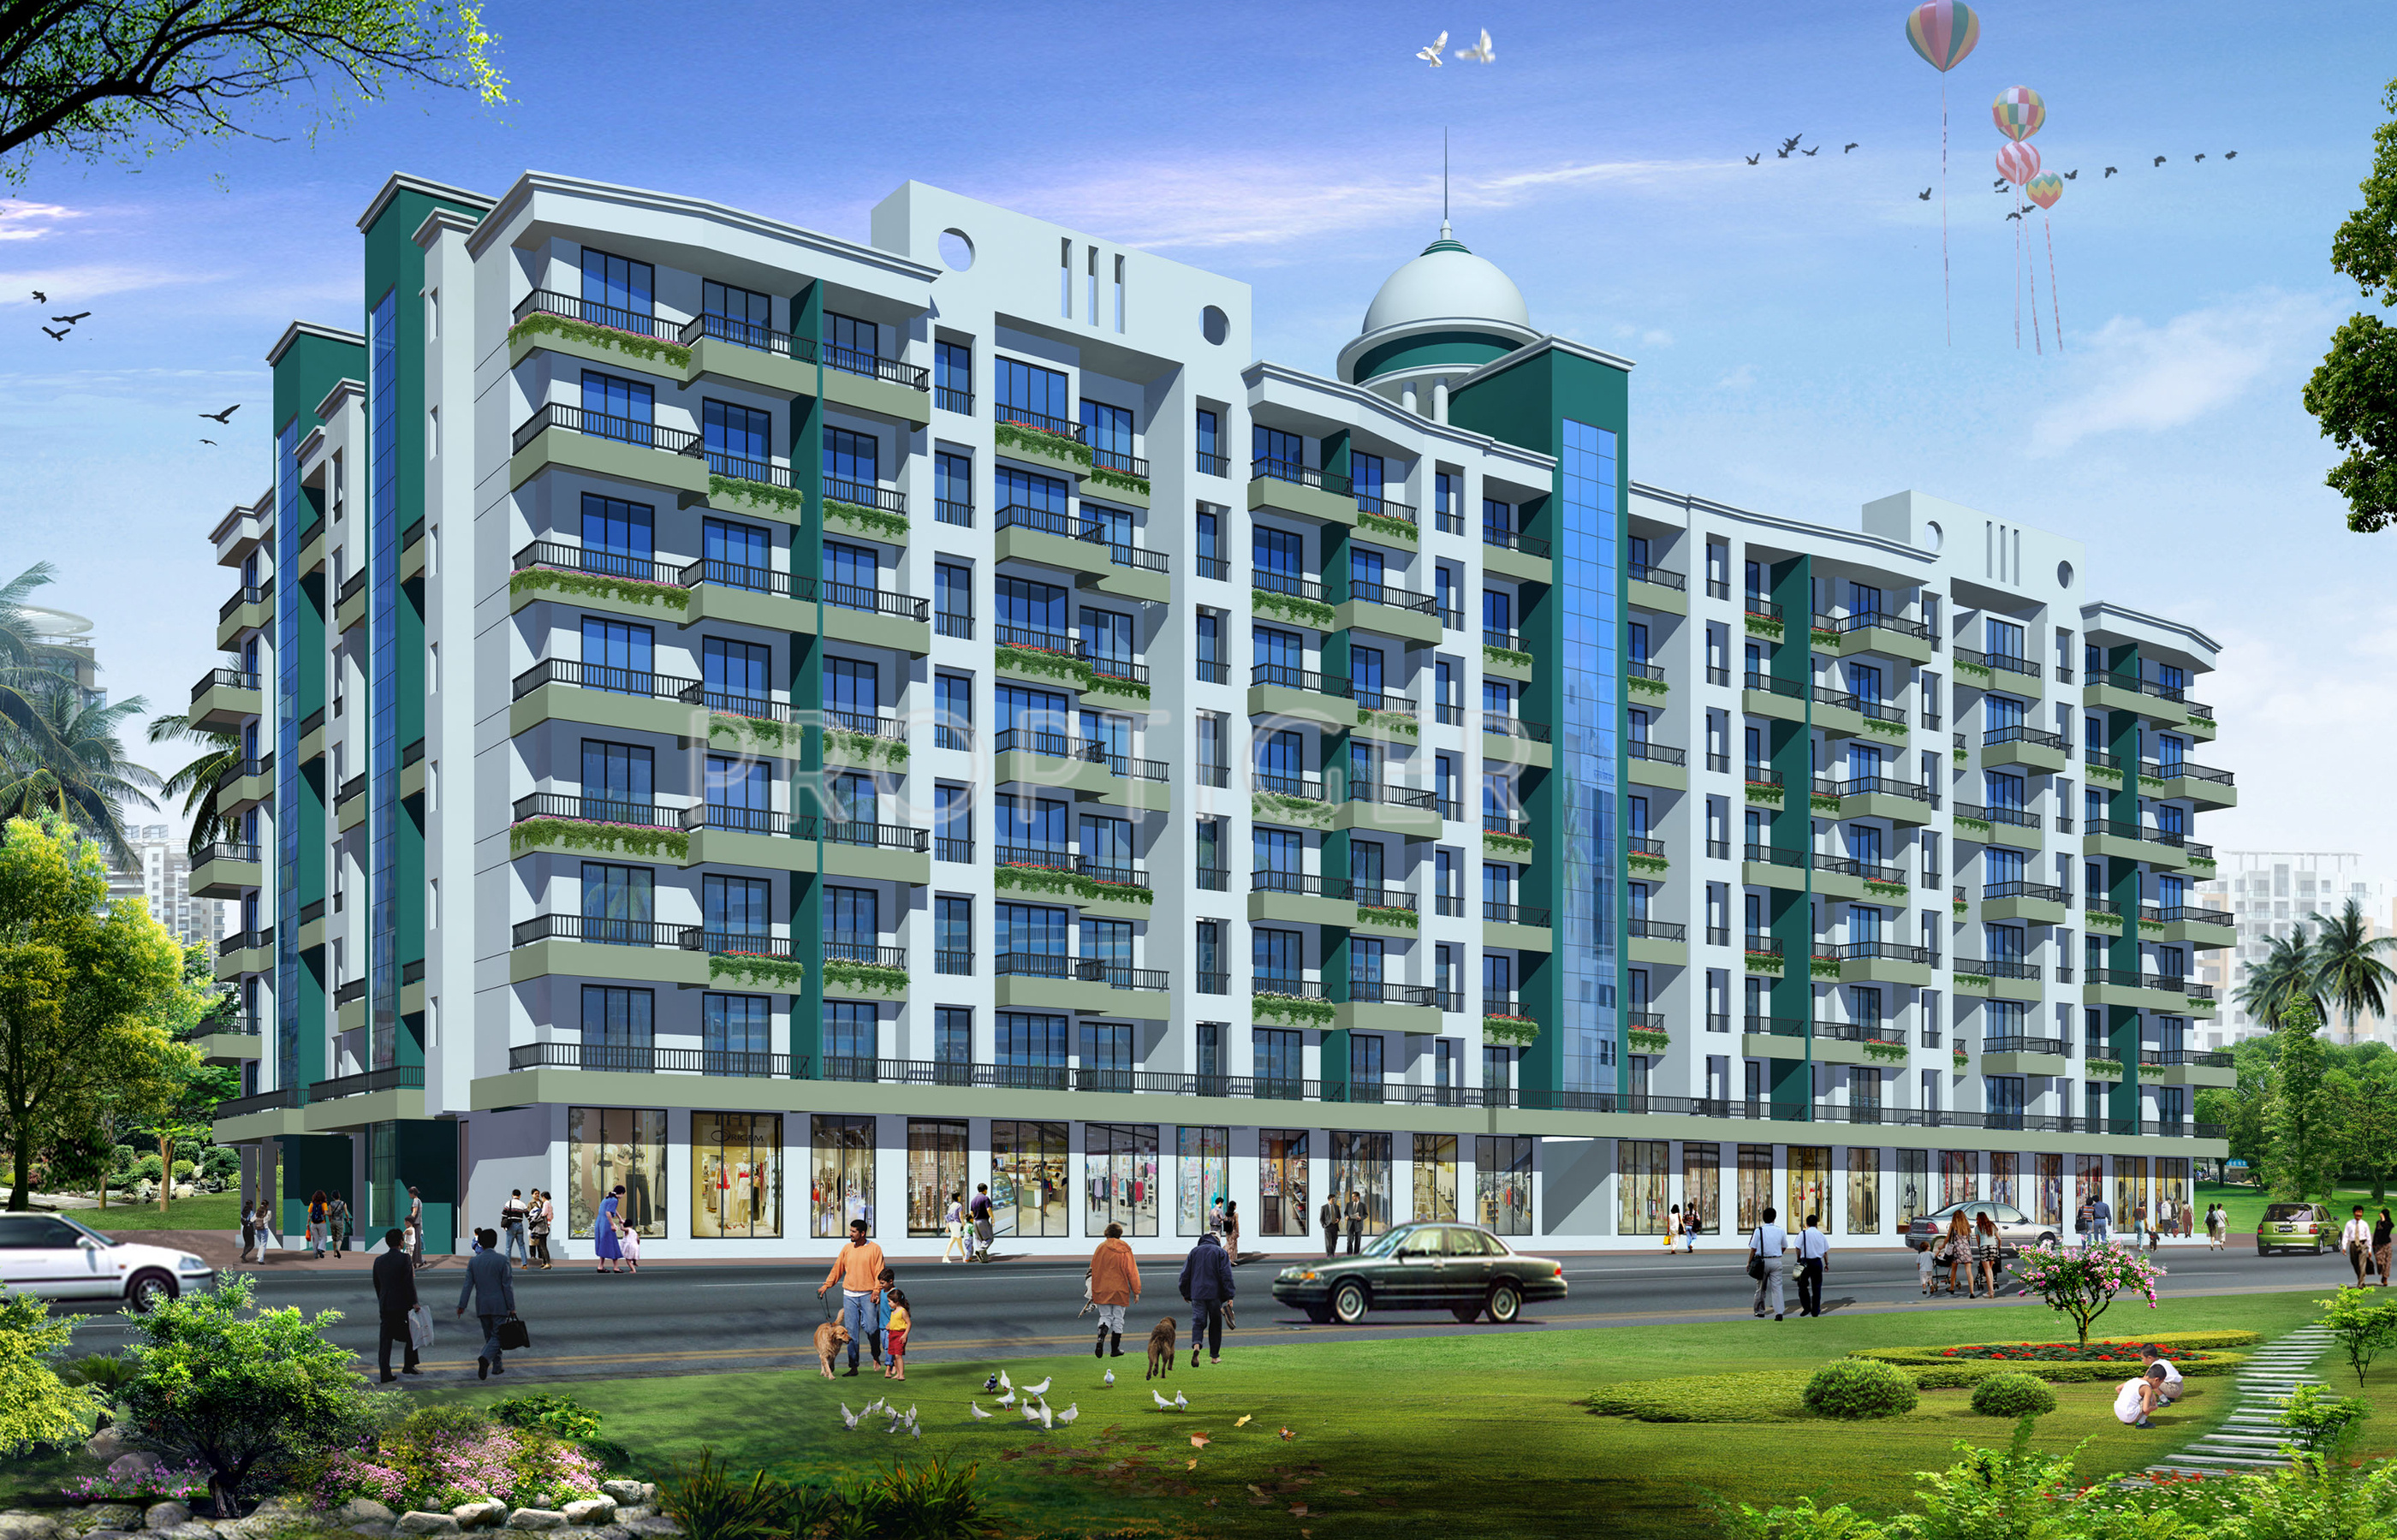 970 sq ft 2 BHK 2T Apartment for Sale in Dange Group Complex Nala ...